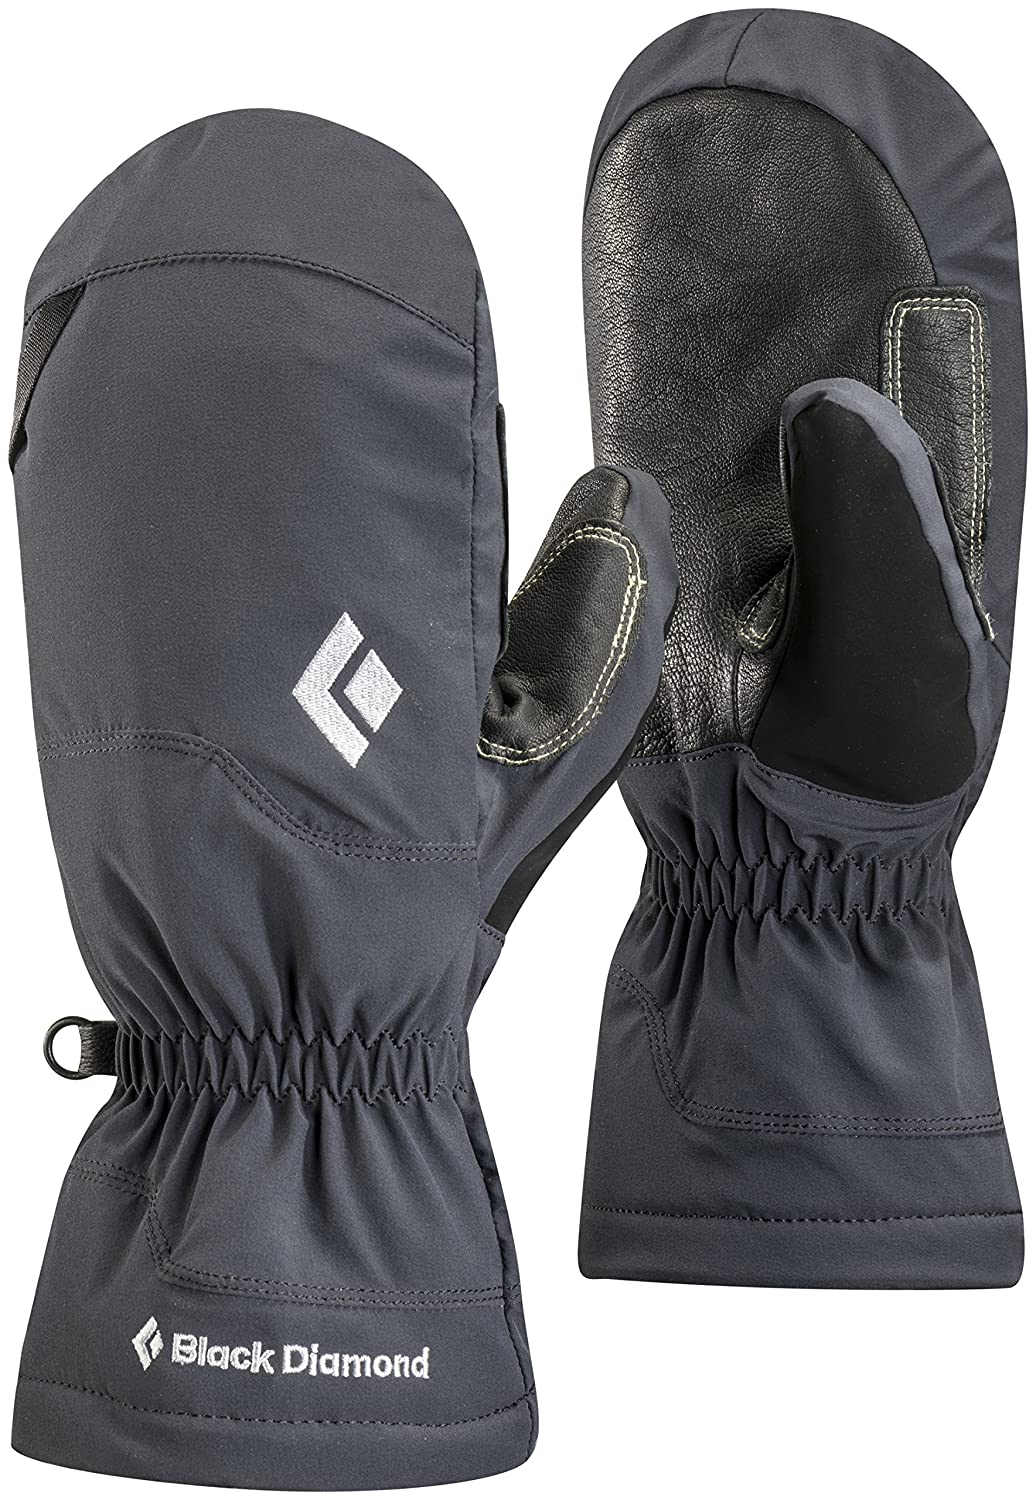 Black Diamond Men's Glissade Mitts Black Diamond Equipment LTD